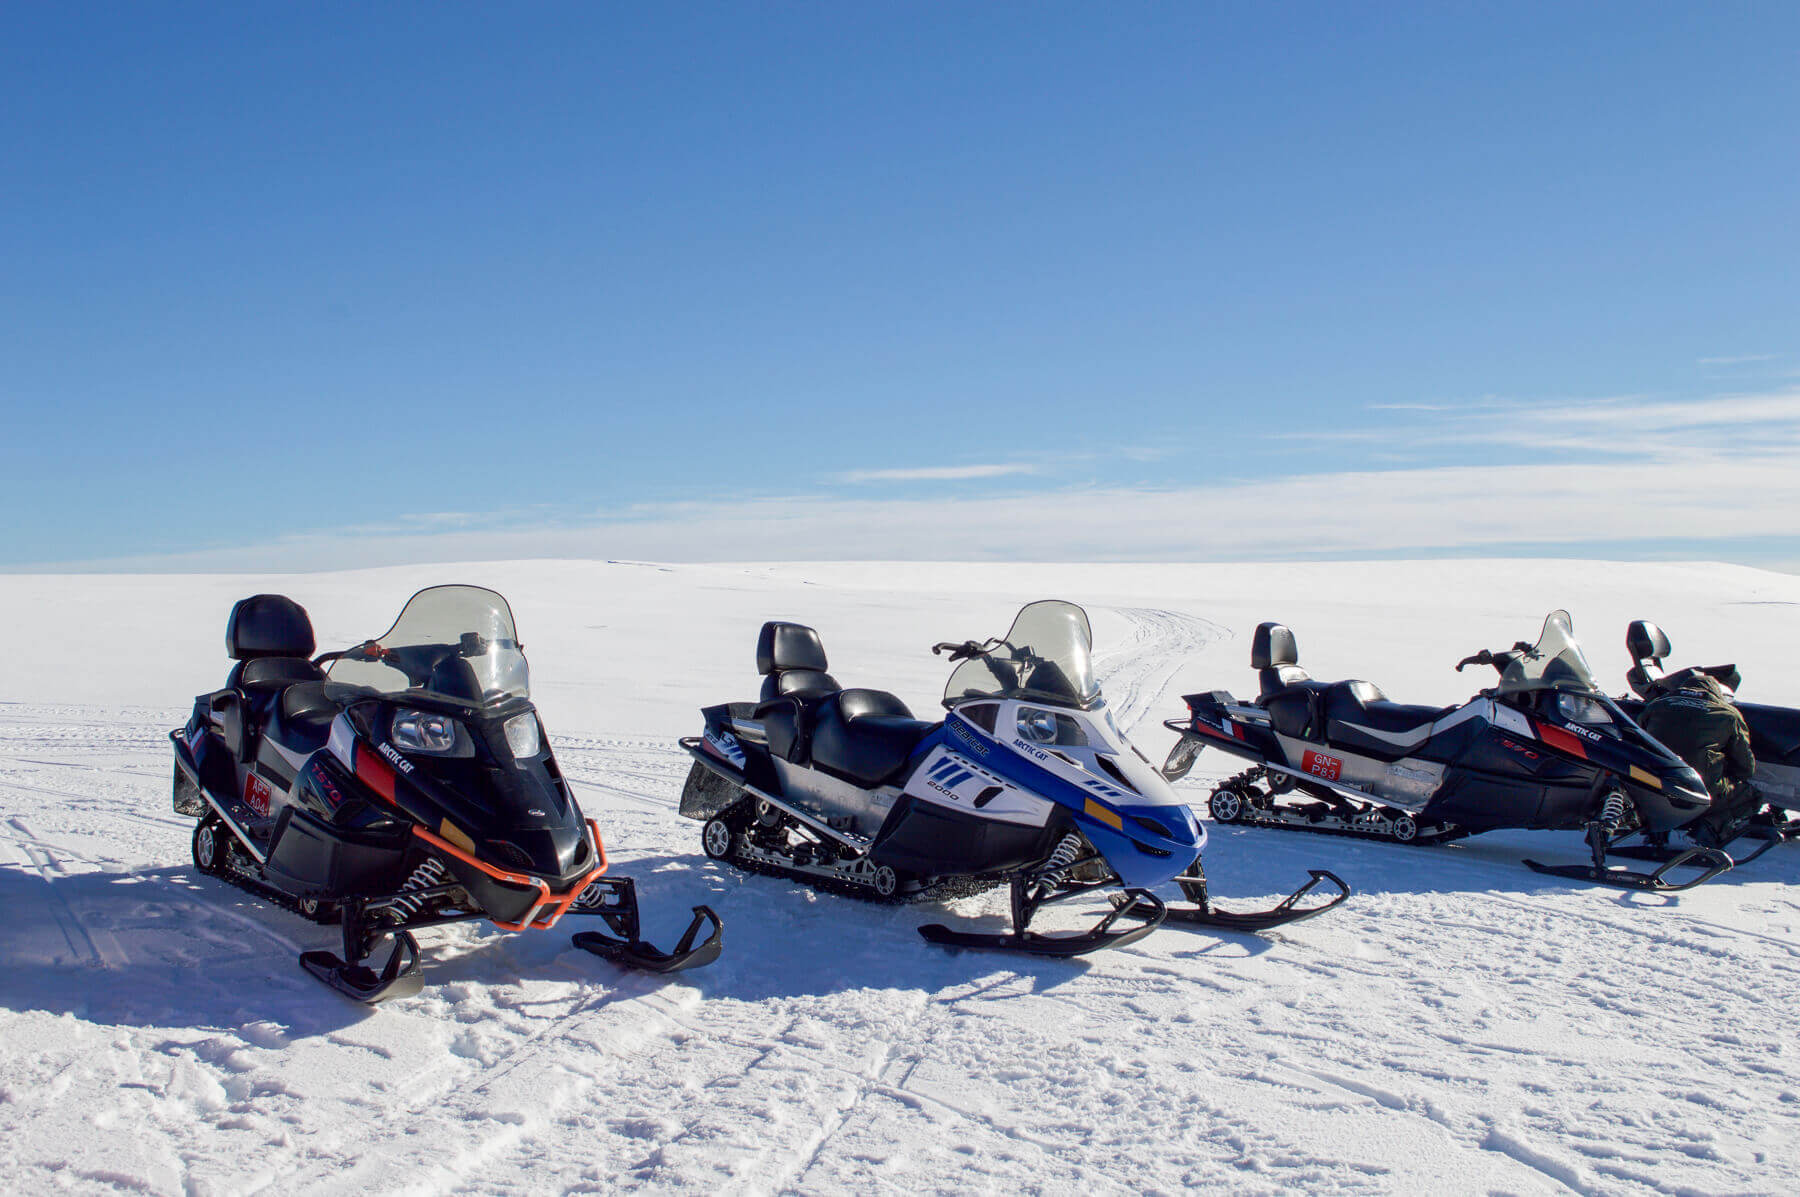 4 snow mobiles on the top of a glacier